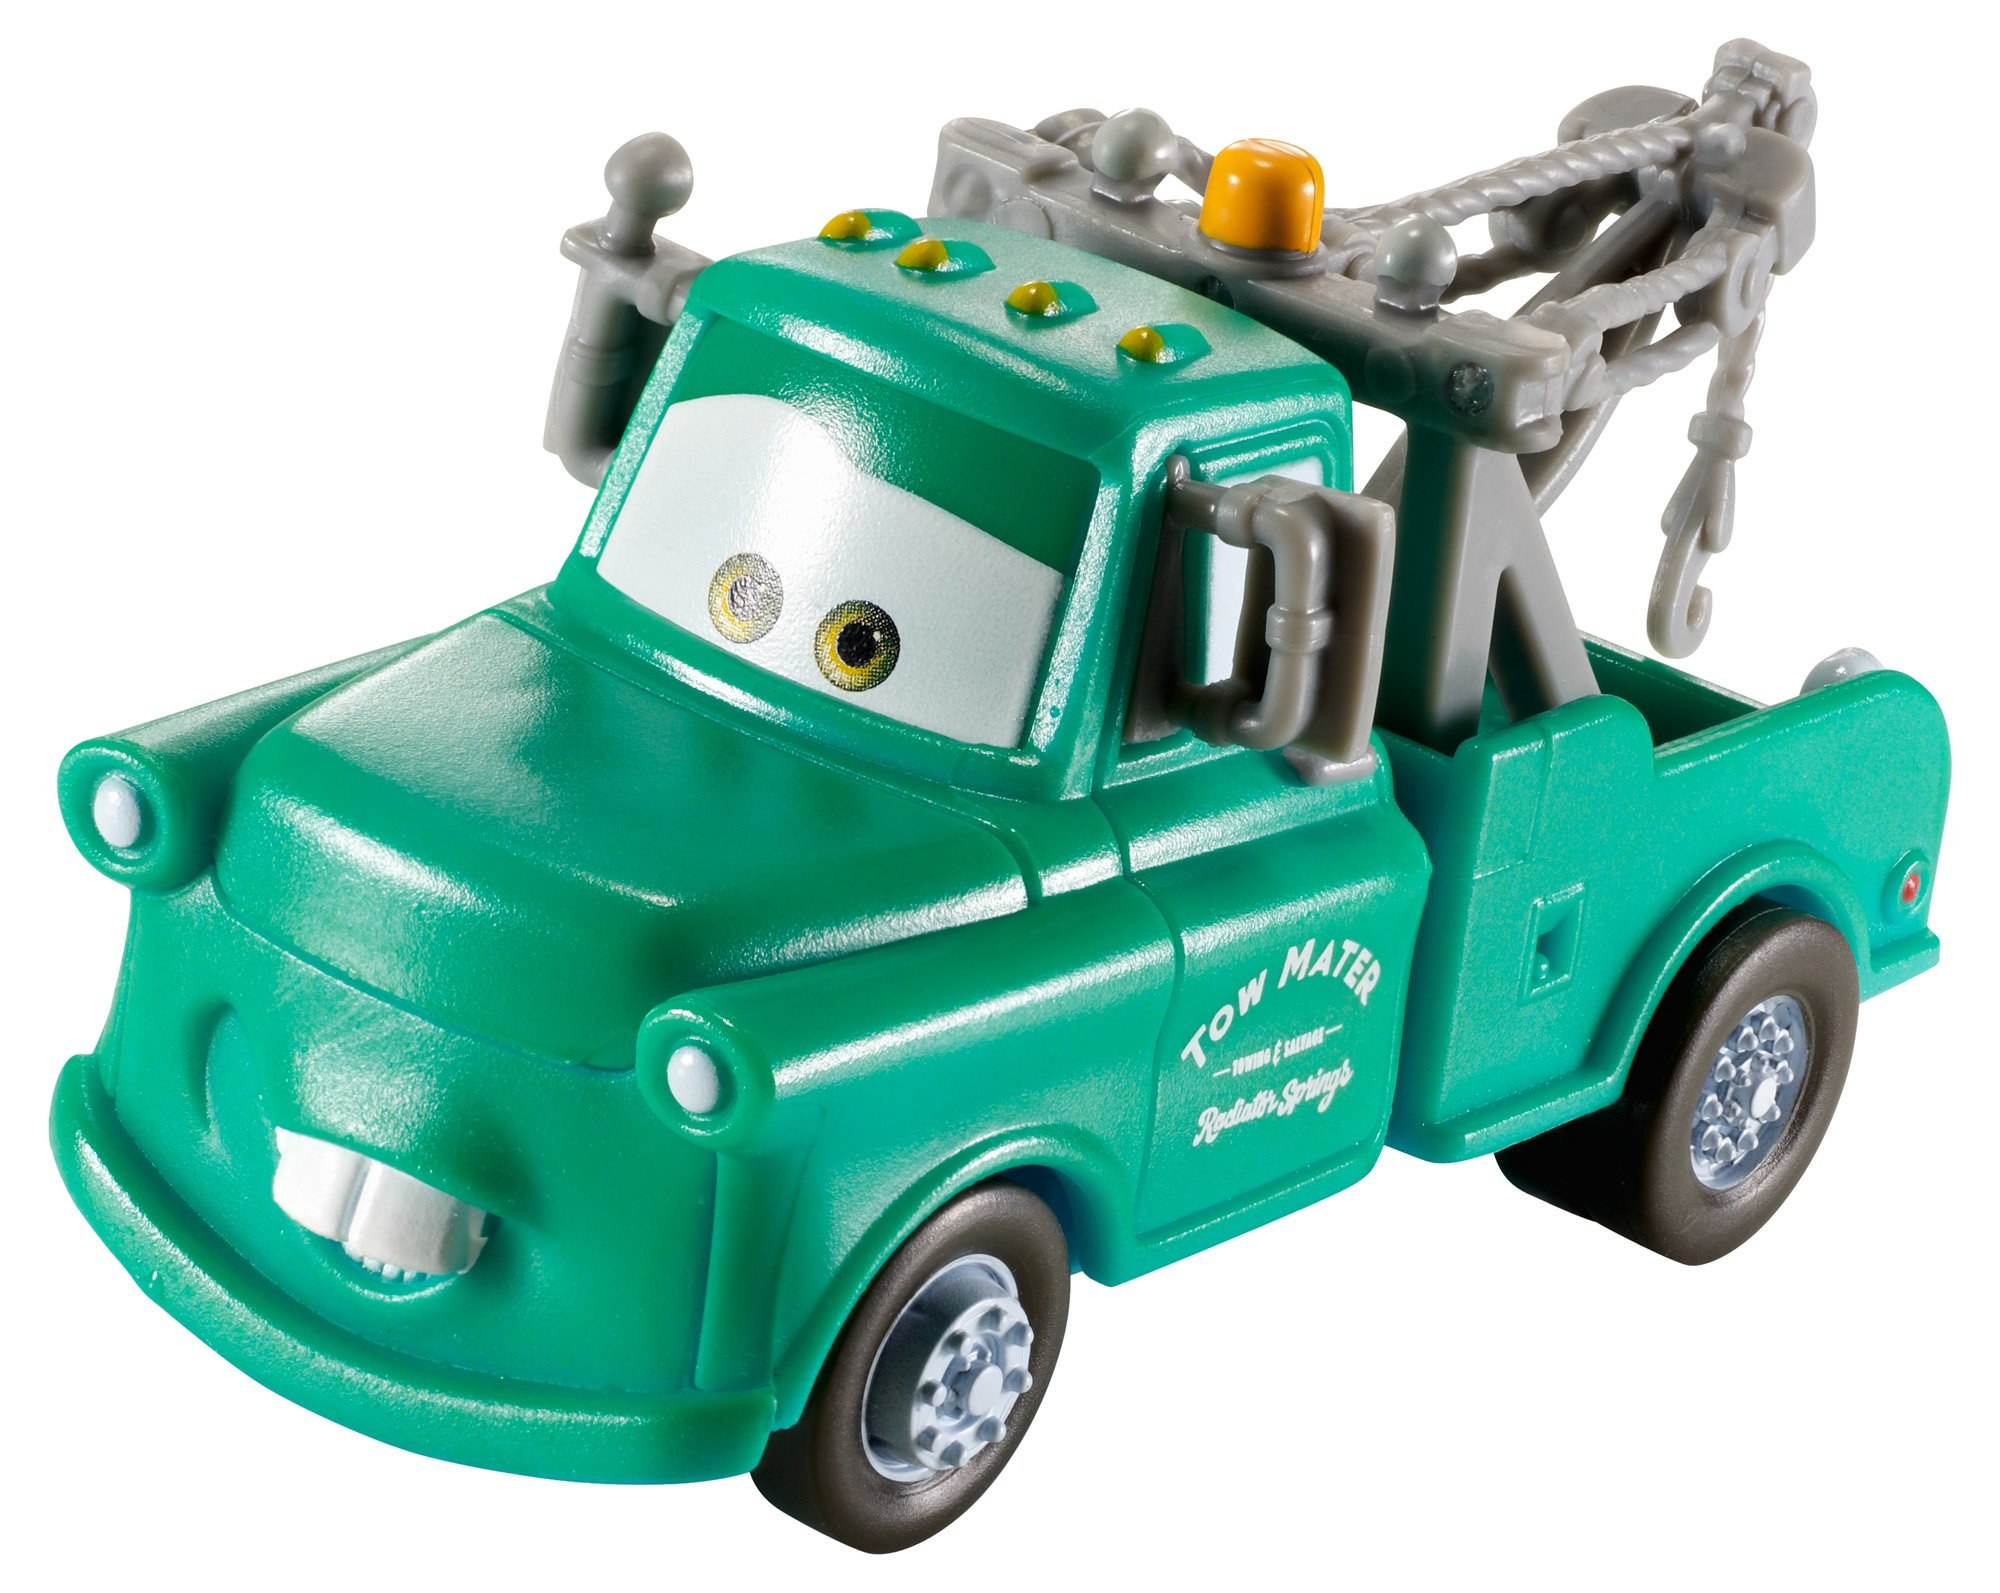 Disney Pixar Cars Color Changers Brand New Mater Vehicle Teal To Green 1 55 Scale Buy Online In United Arab Emirates Disney Cars Toys Products In United Arab Emirates See Prices